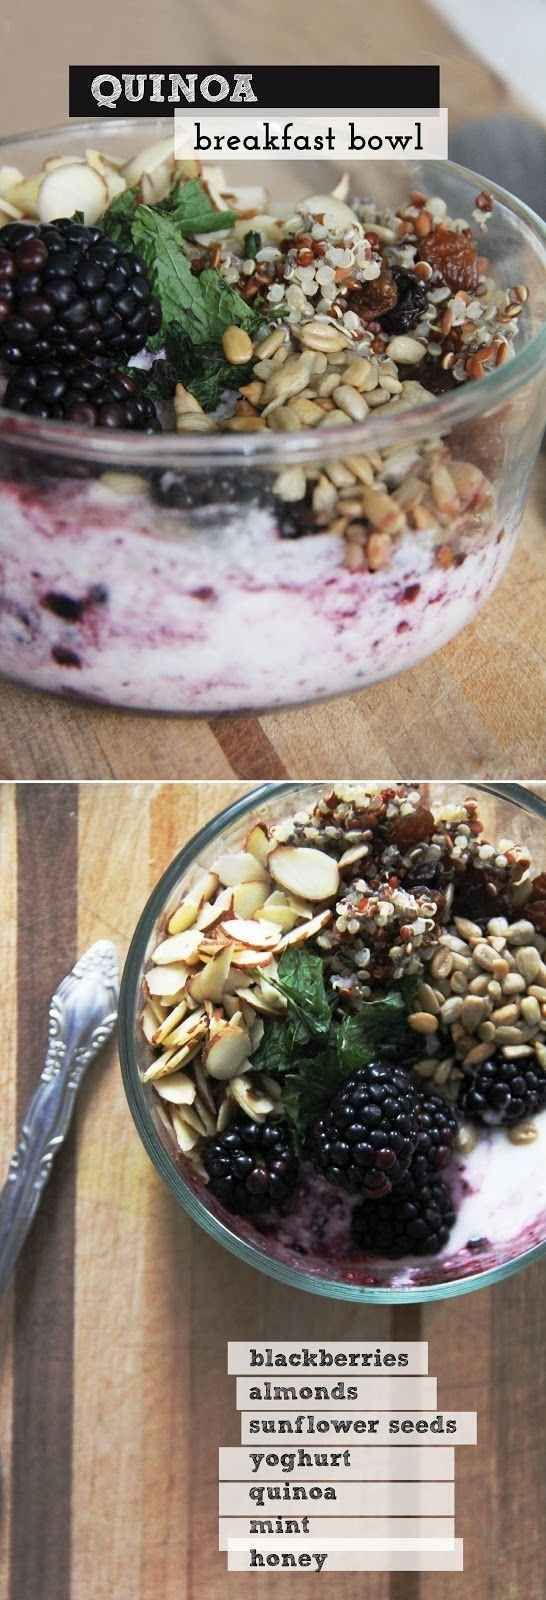 Quinoa Breakfast Bowl | 24 Delicious Ways To Eat Quinoa For Breakfast #breakfast #recipe #brunch #healthy #recipes